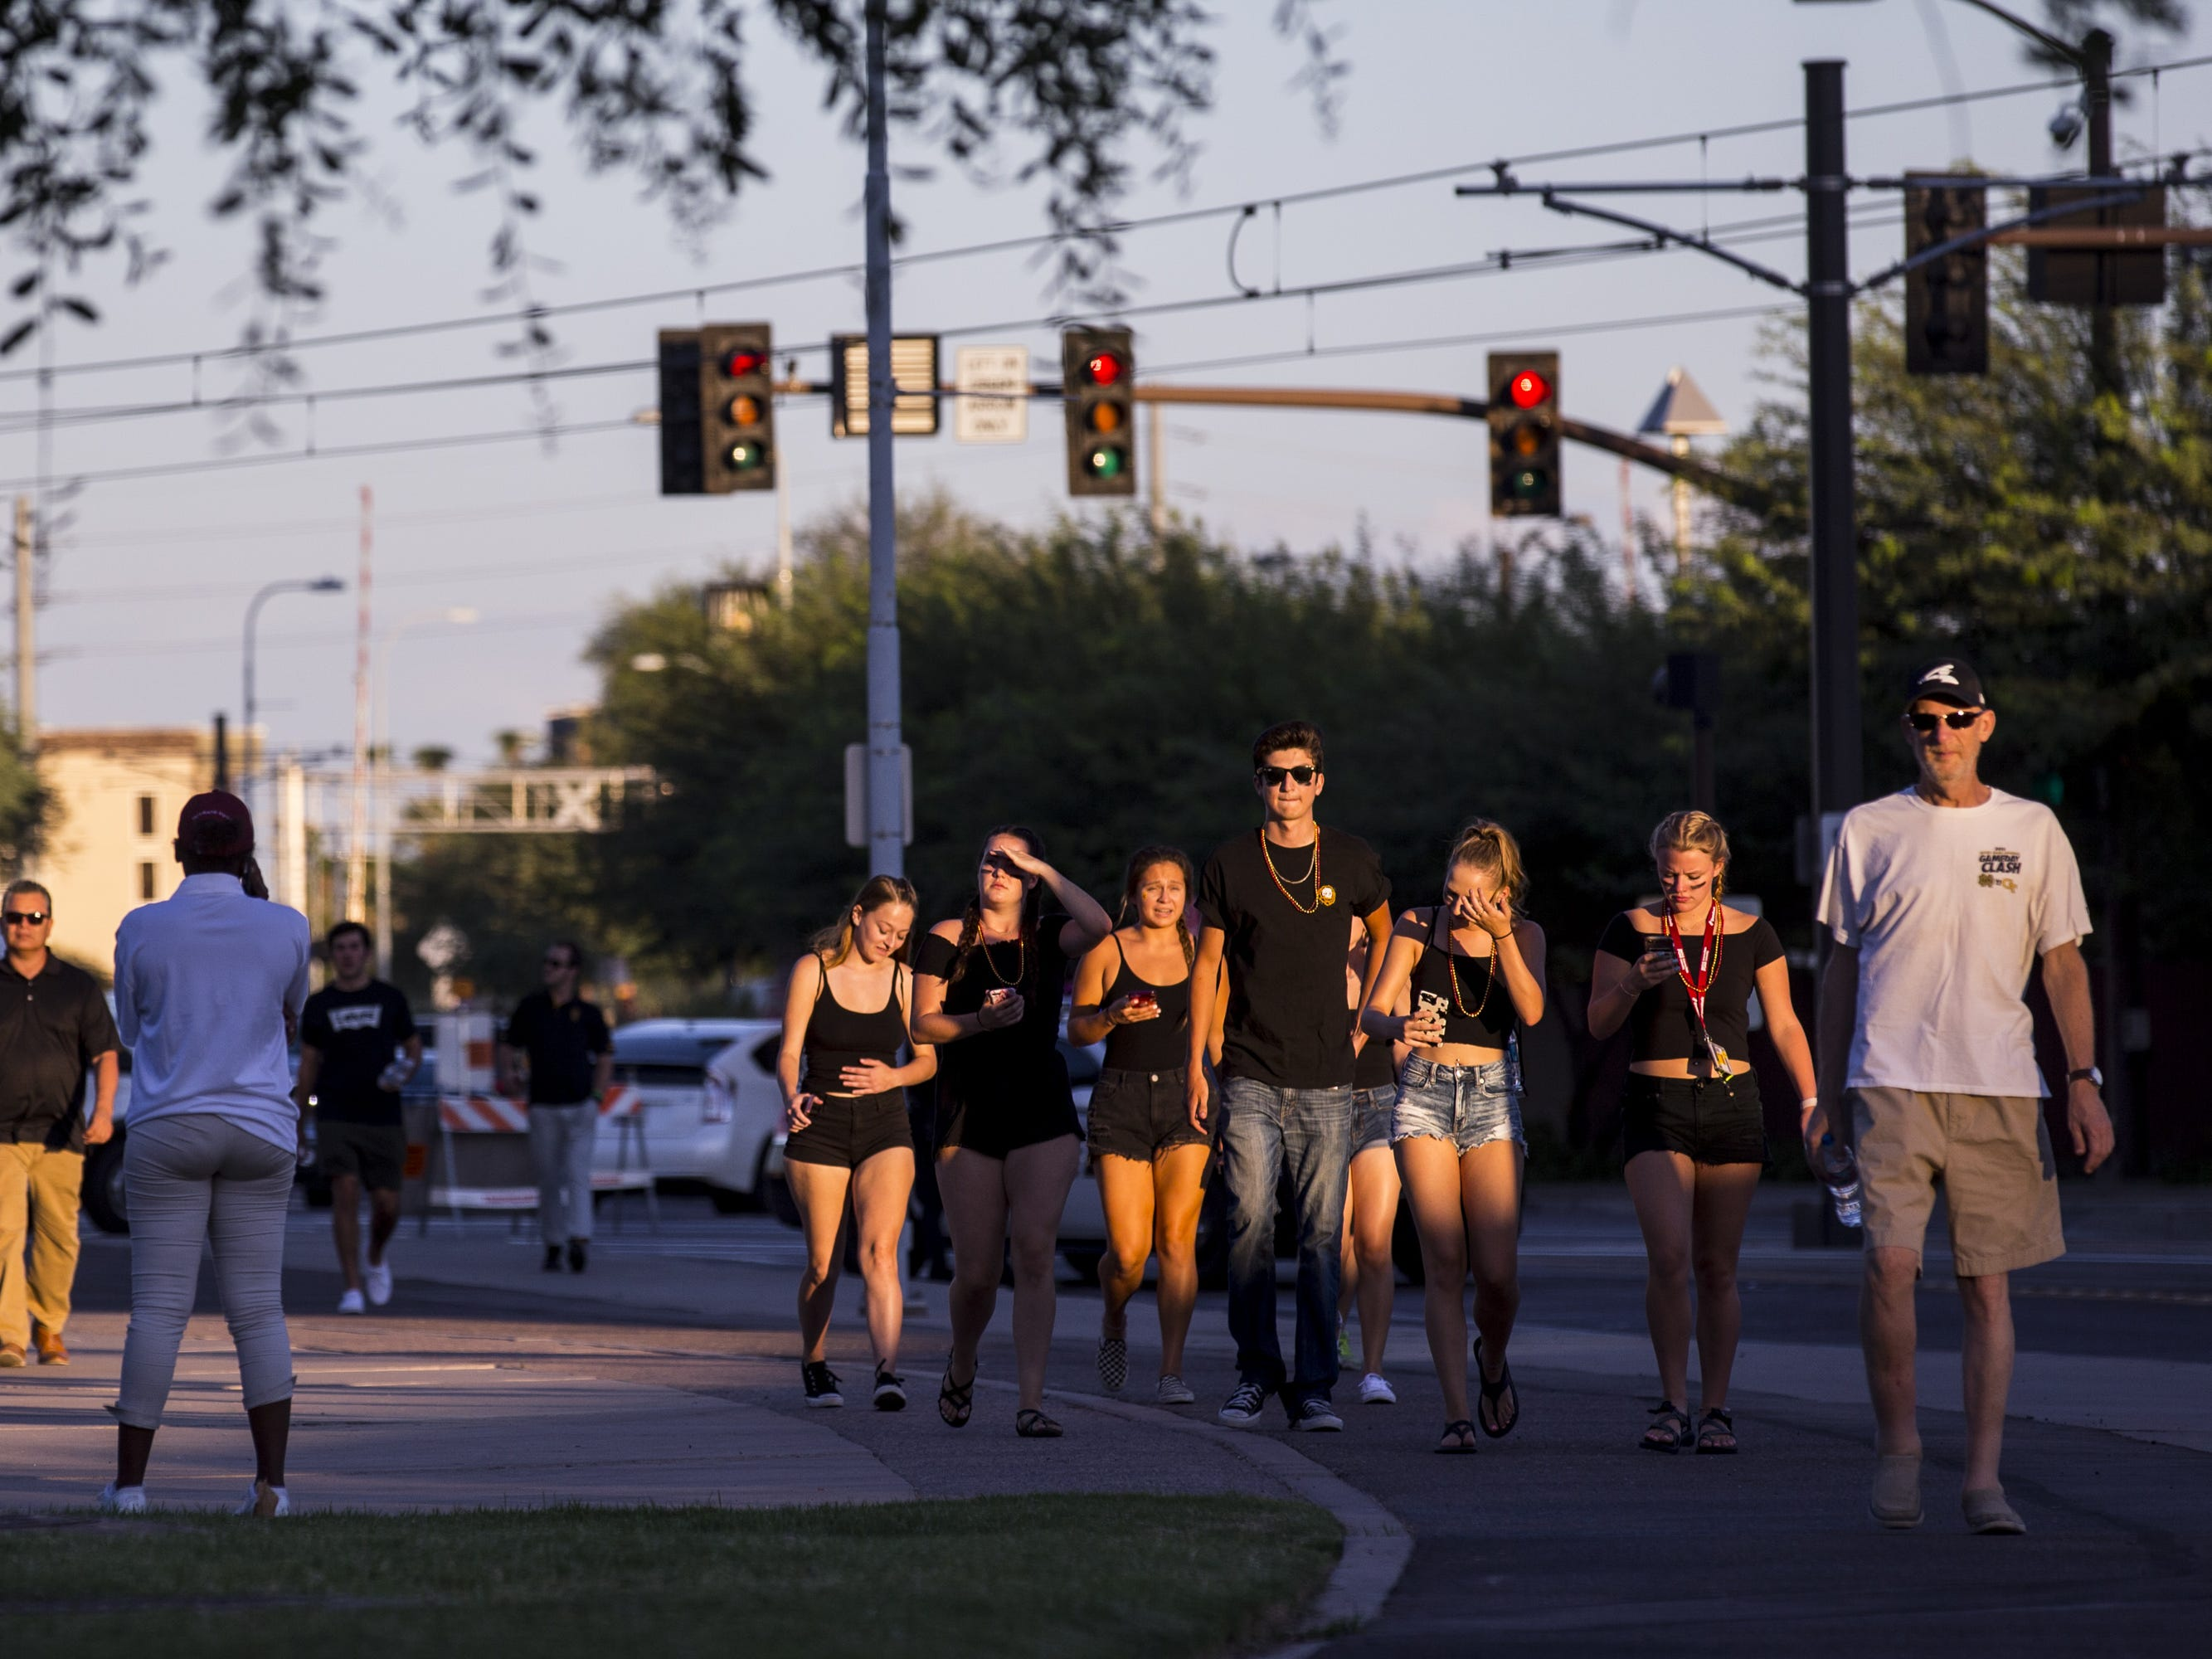 Fans walk to the stadium before the game against Michigan State on Saturday, Sept. 8, 2018, at Sun Devil Stadium in Tempe, Ariz.